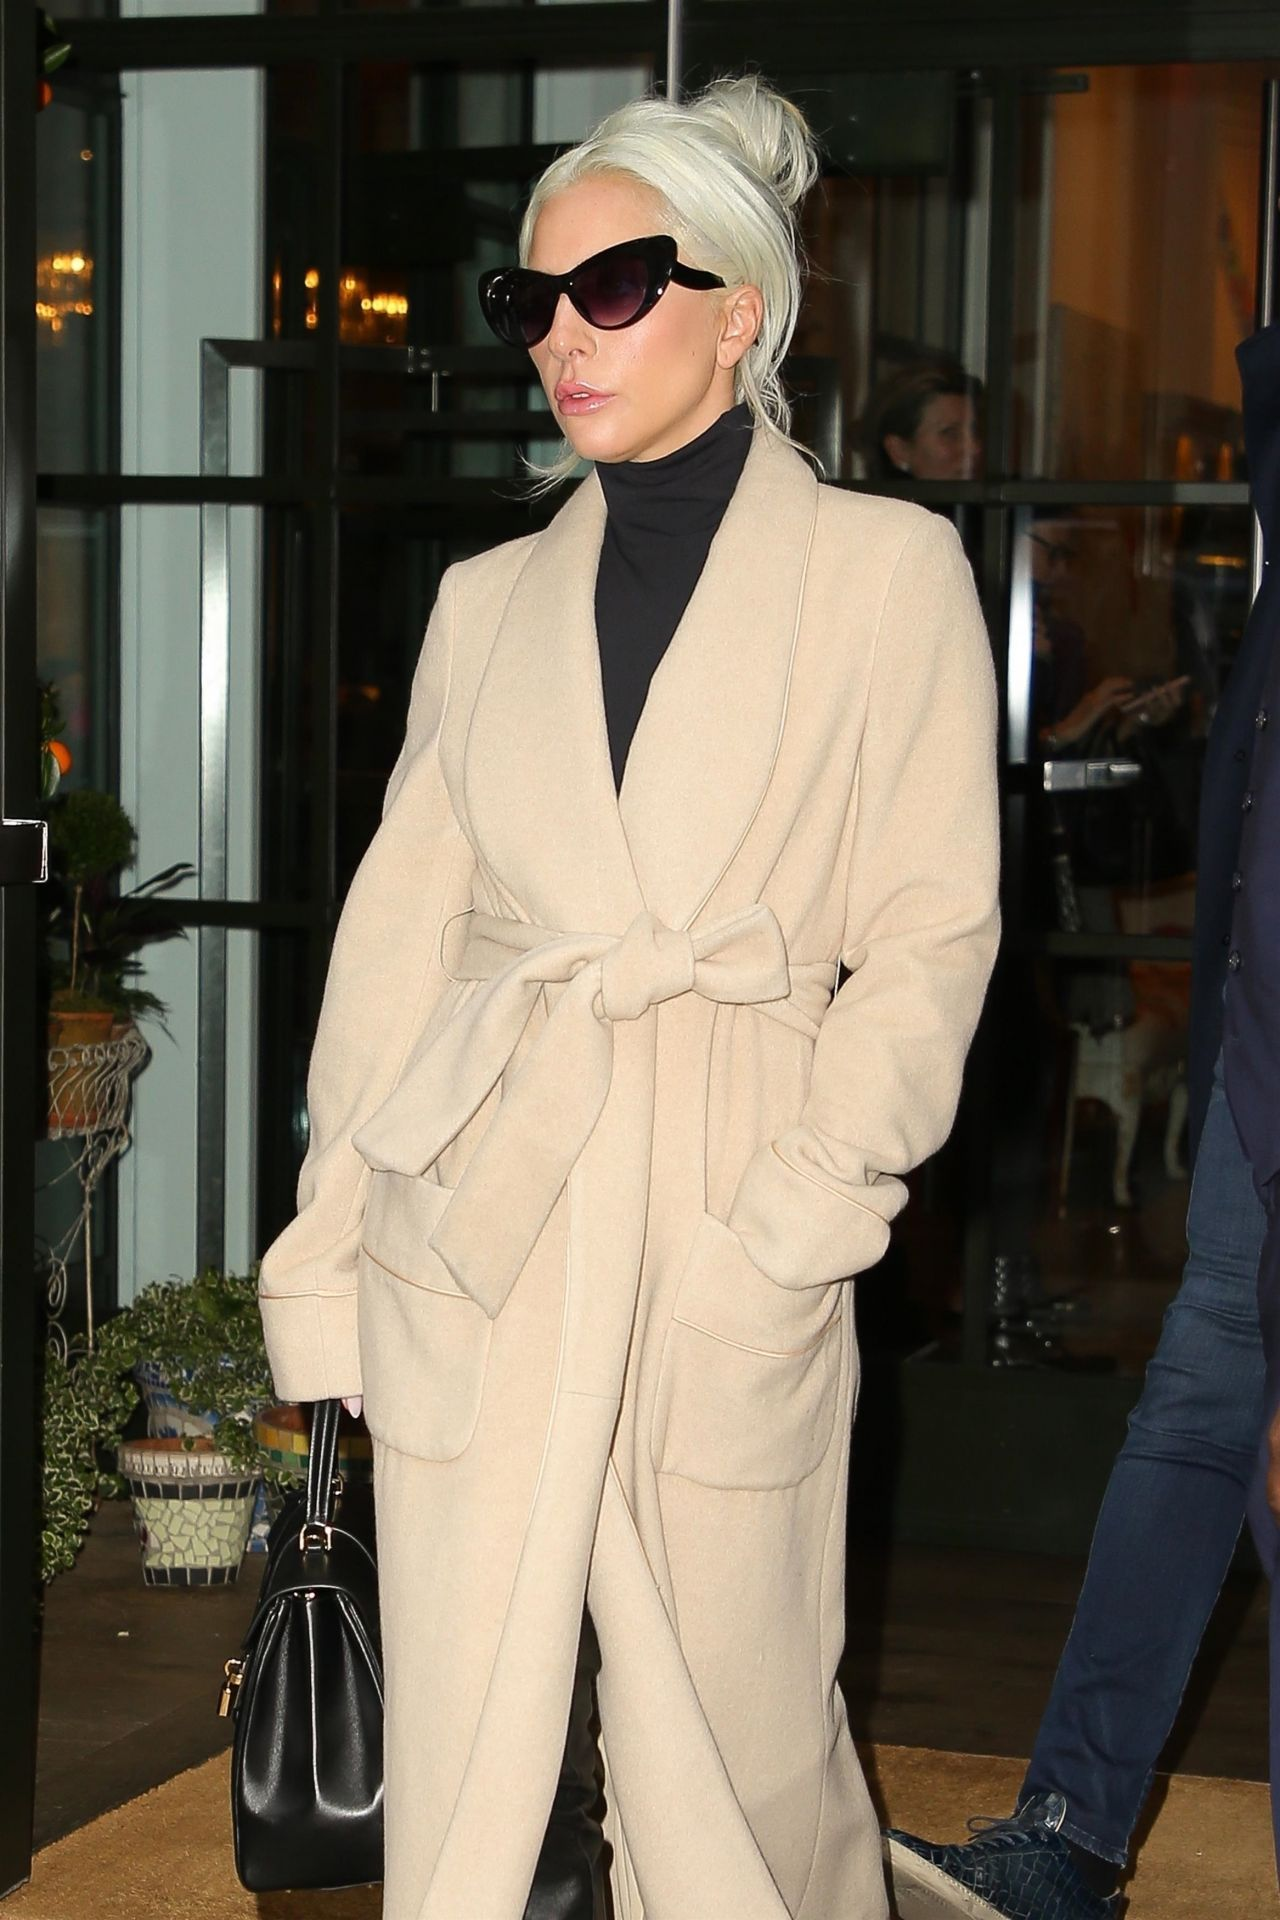 lady-gaga-style-and-fashion-nyc-01-09-2019-2.jpg